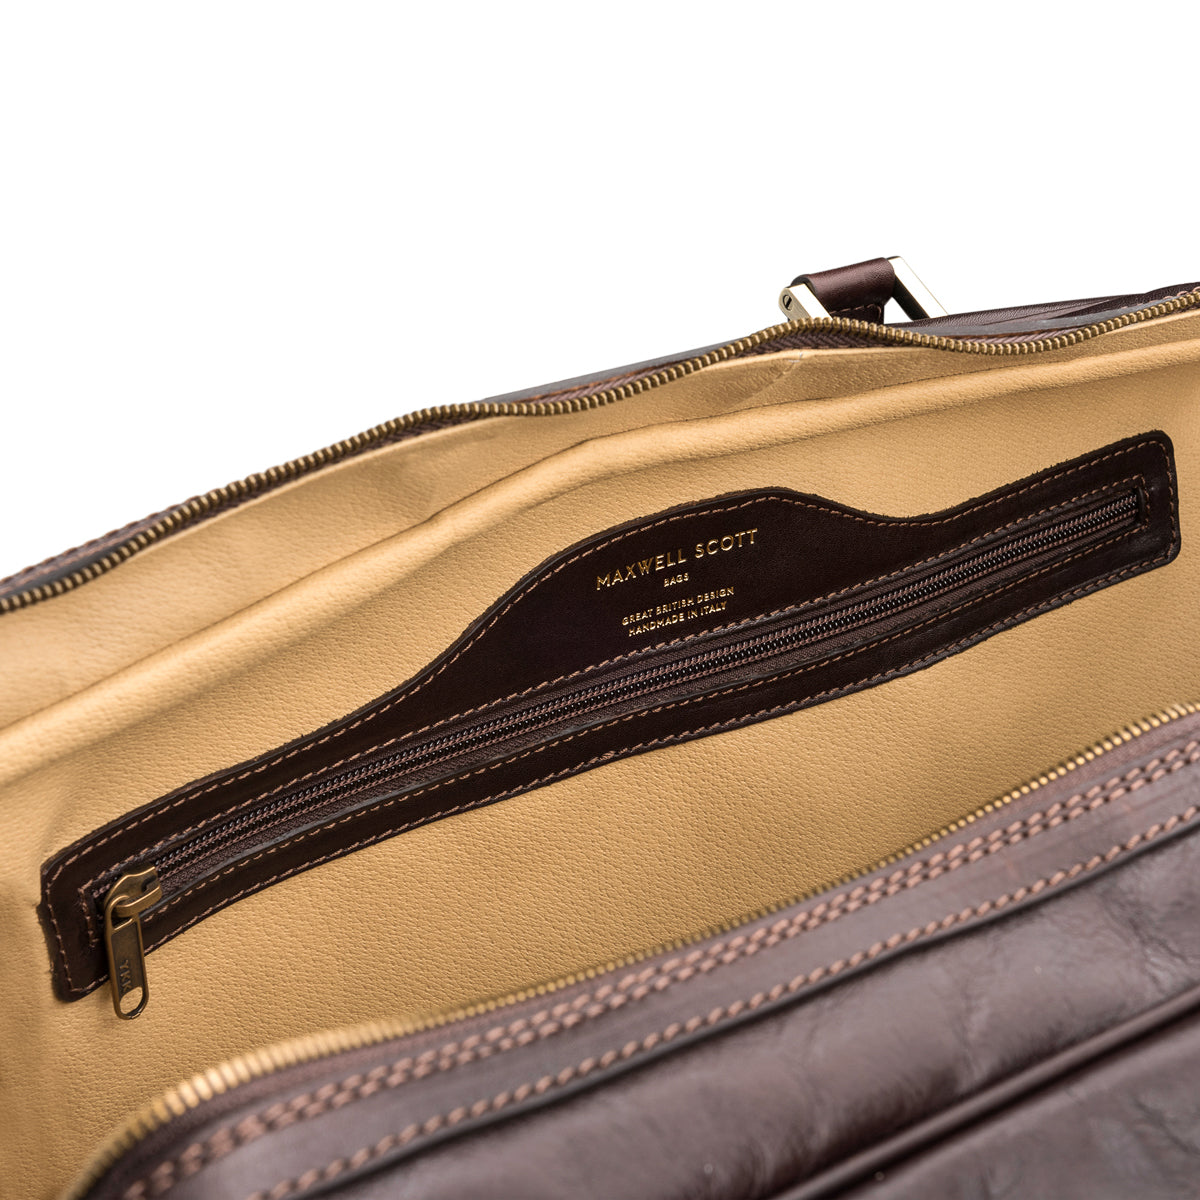 Image 6 of the Extra Large 'Flero' Dark Chocolate Veg-Tanned Leather Holdall